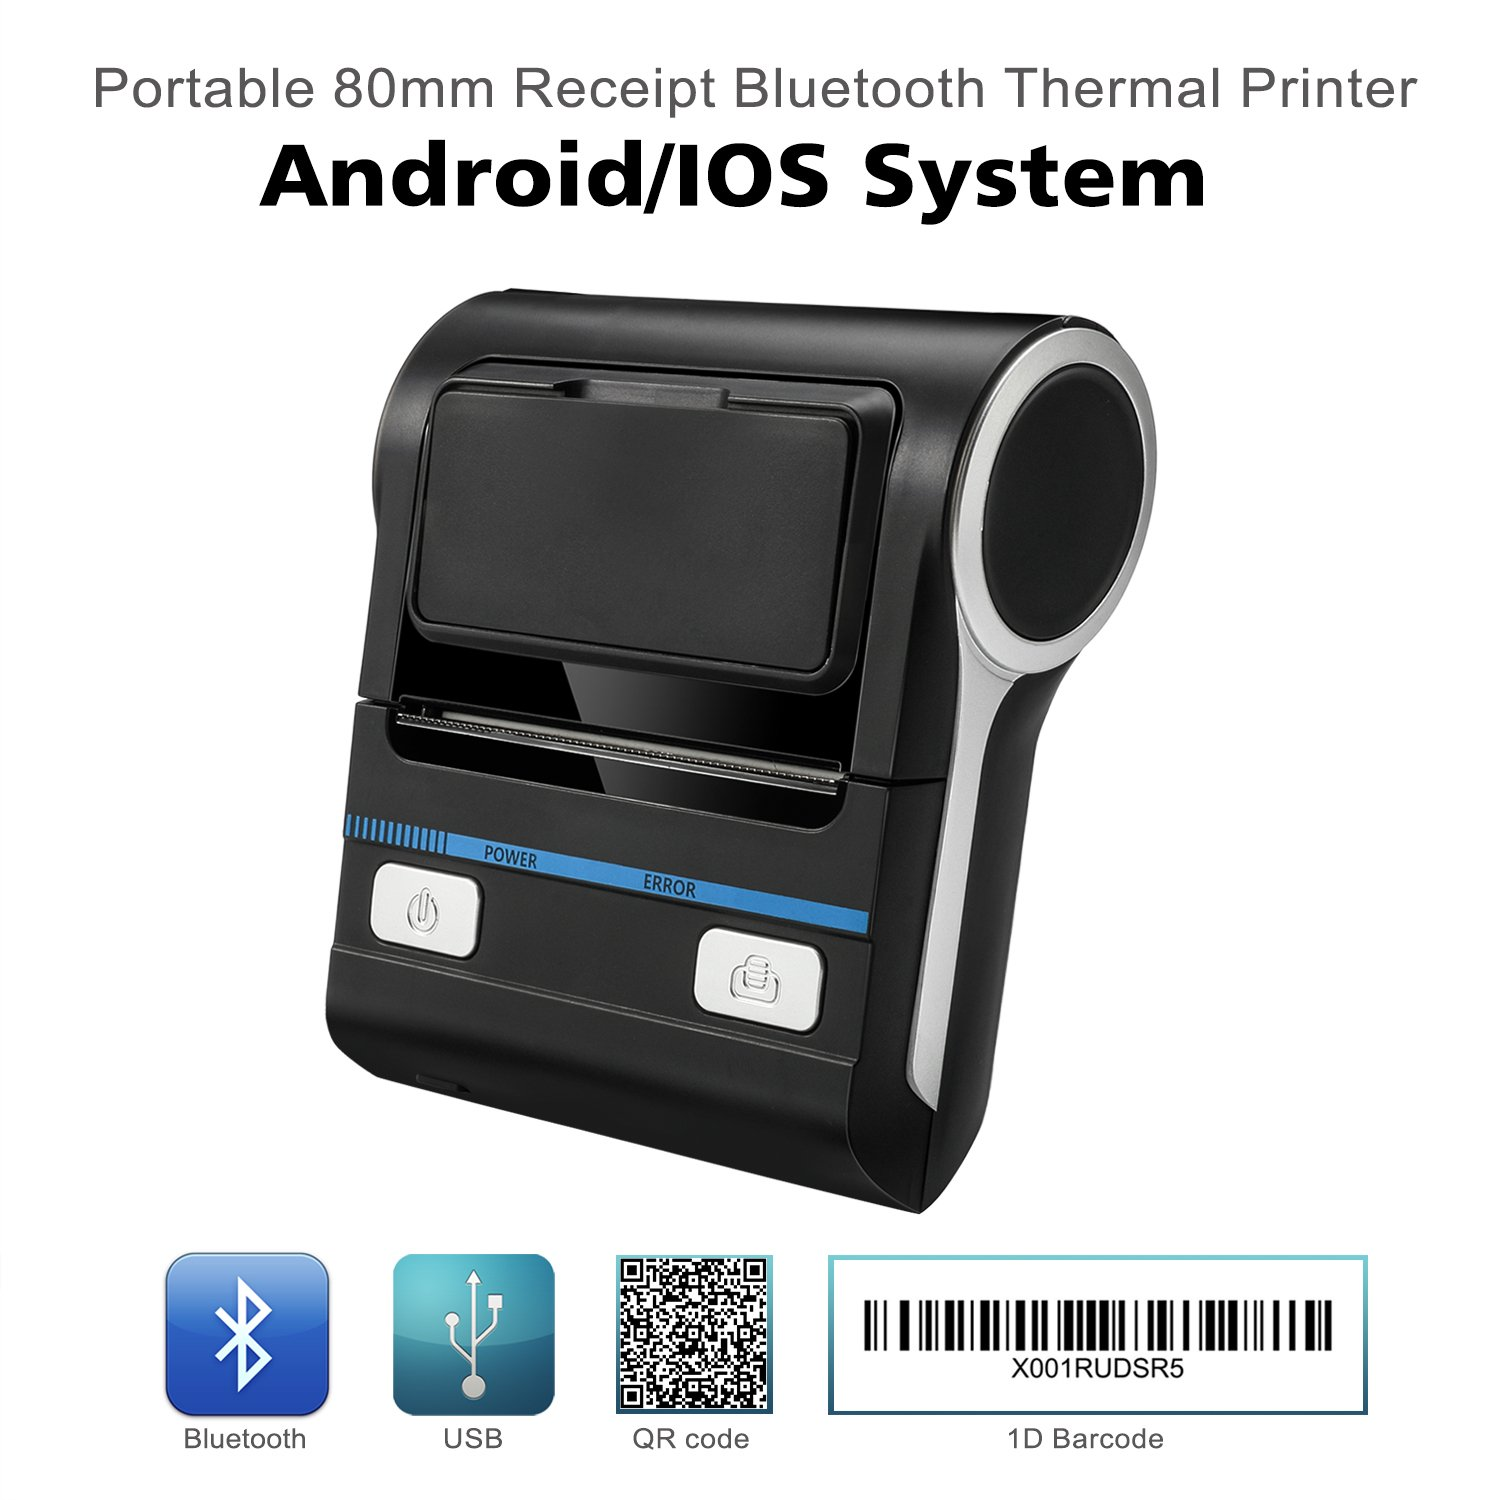 Bluetooth Receipt Printers Wireless Thermal Printer 80mm Compatible with Android/iOS/Windows System ESC/POS Print Commands Set for Office and Small Business Milestone